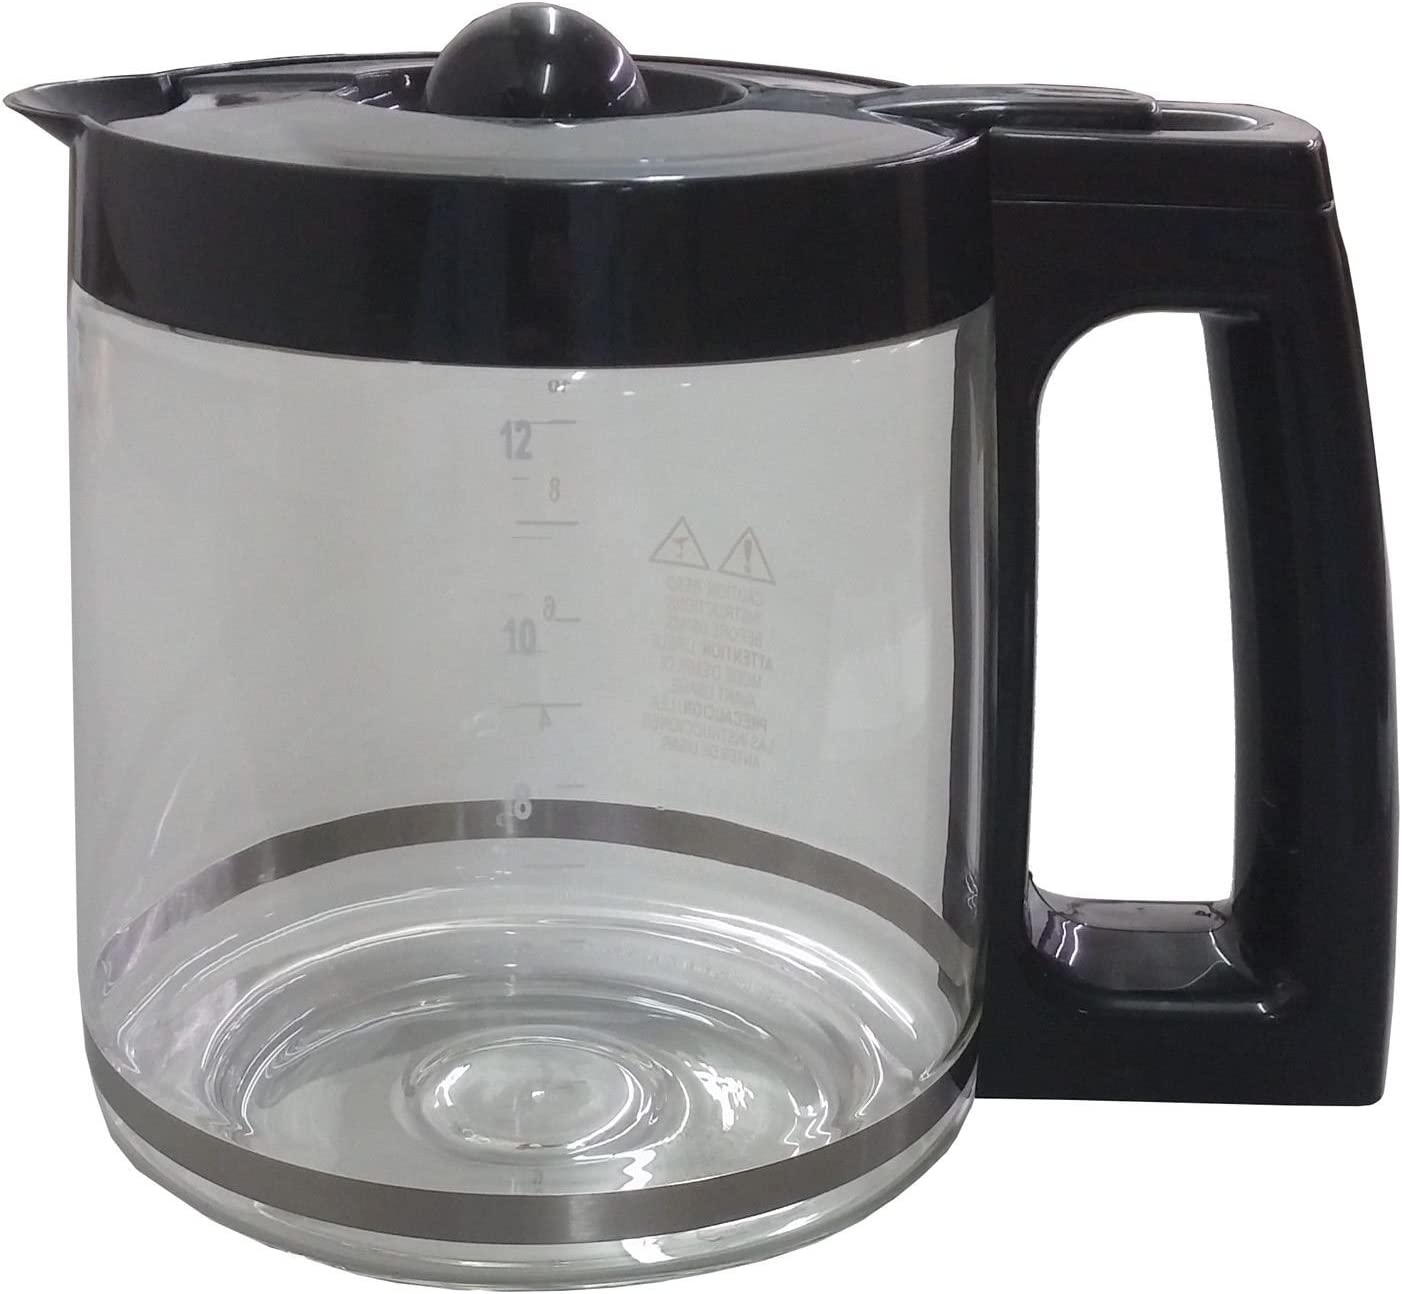 buybuynice for Hamilton Beach 49983 49976 49980 Replacement Carafe FlexBrew Two Way Coffeemaker